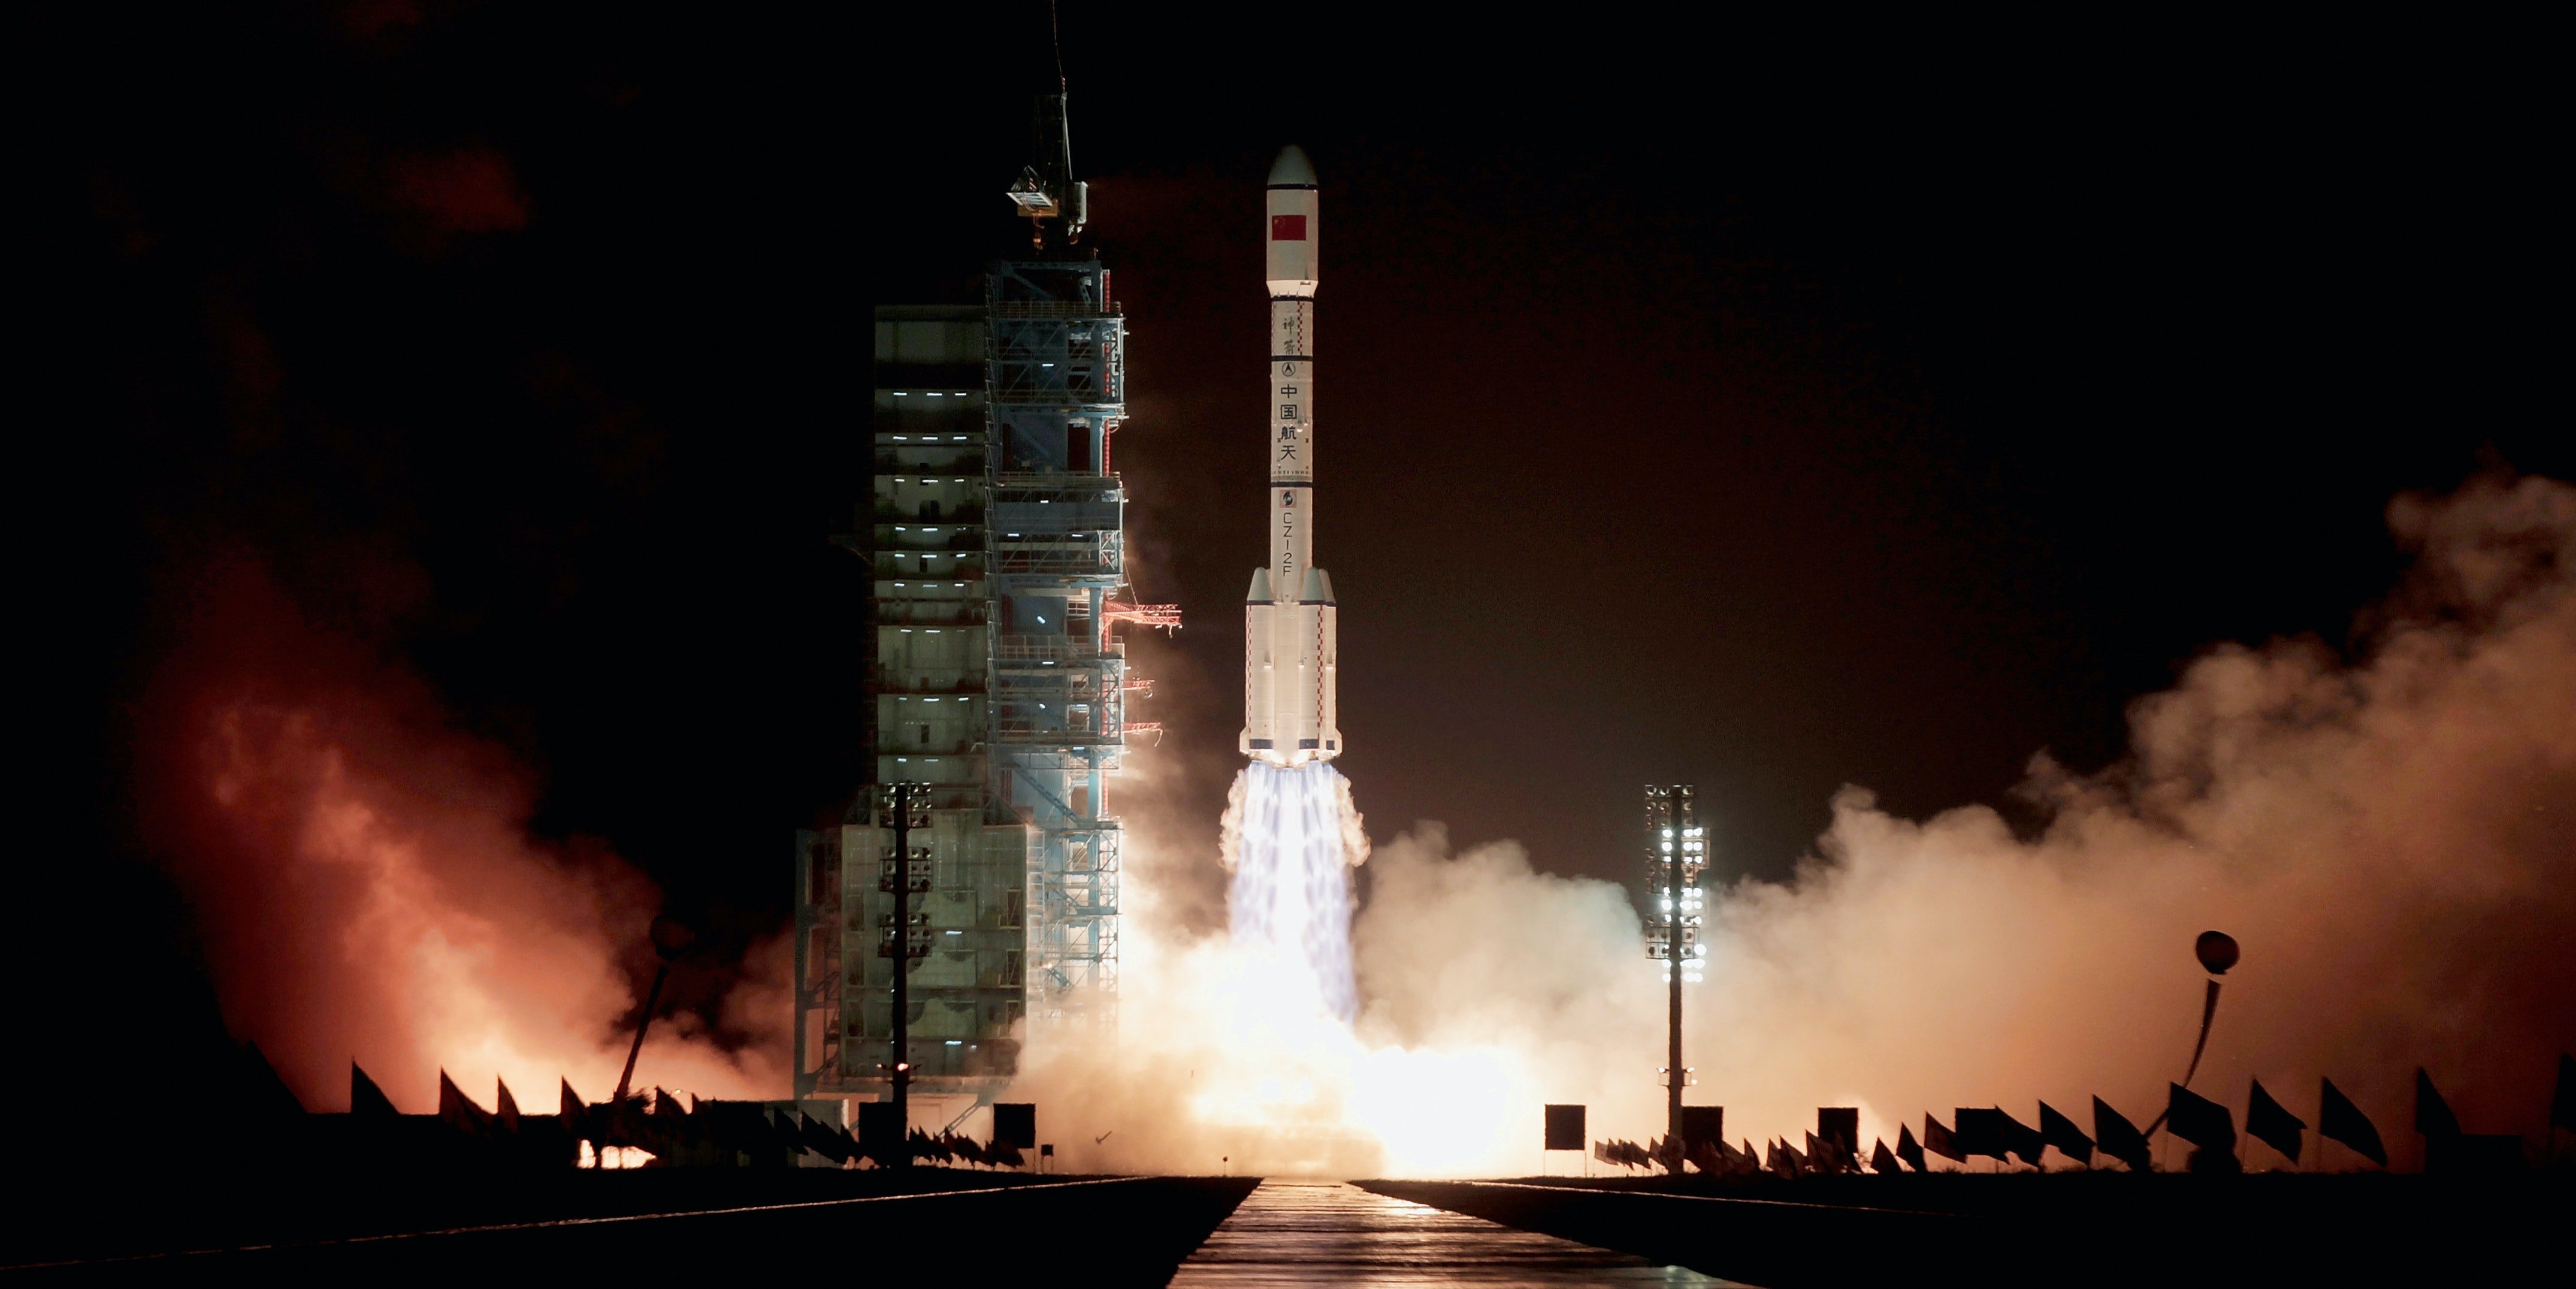 JIUQUAN, CHINA - SEPTEMBER 29:  A Long March 2F rocket carrying the country's first space laboratory module Tiangong-1 lifts off from the Jiuquan Satellite Launch Center on September 29, 2011 in Jiuquan, Gansu province of China. The unmanned Tiangong-1 will stay in orbit for two years and dock with China's Shenzhou-8, -9 and -10 spacecraft with the eventual goal of establishing a manned Chinese space station around 2020.  (Photo by Lintao Zhang/Getty Images)